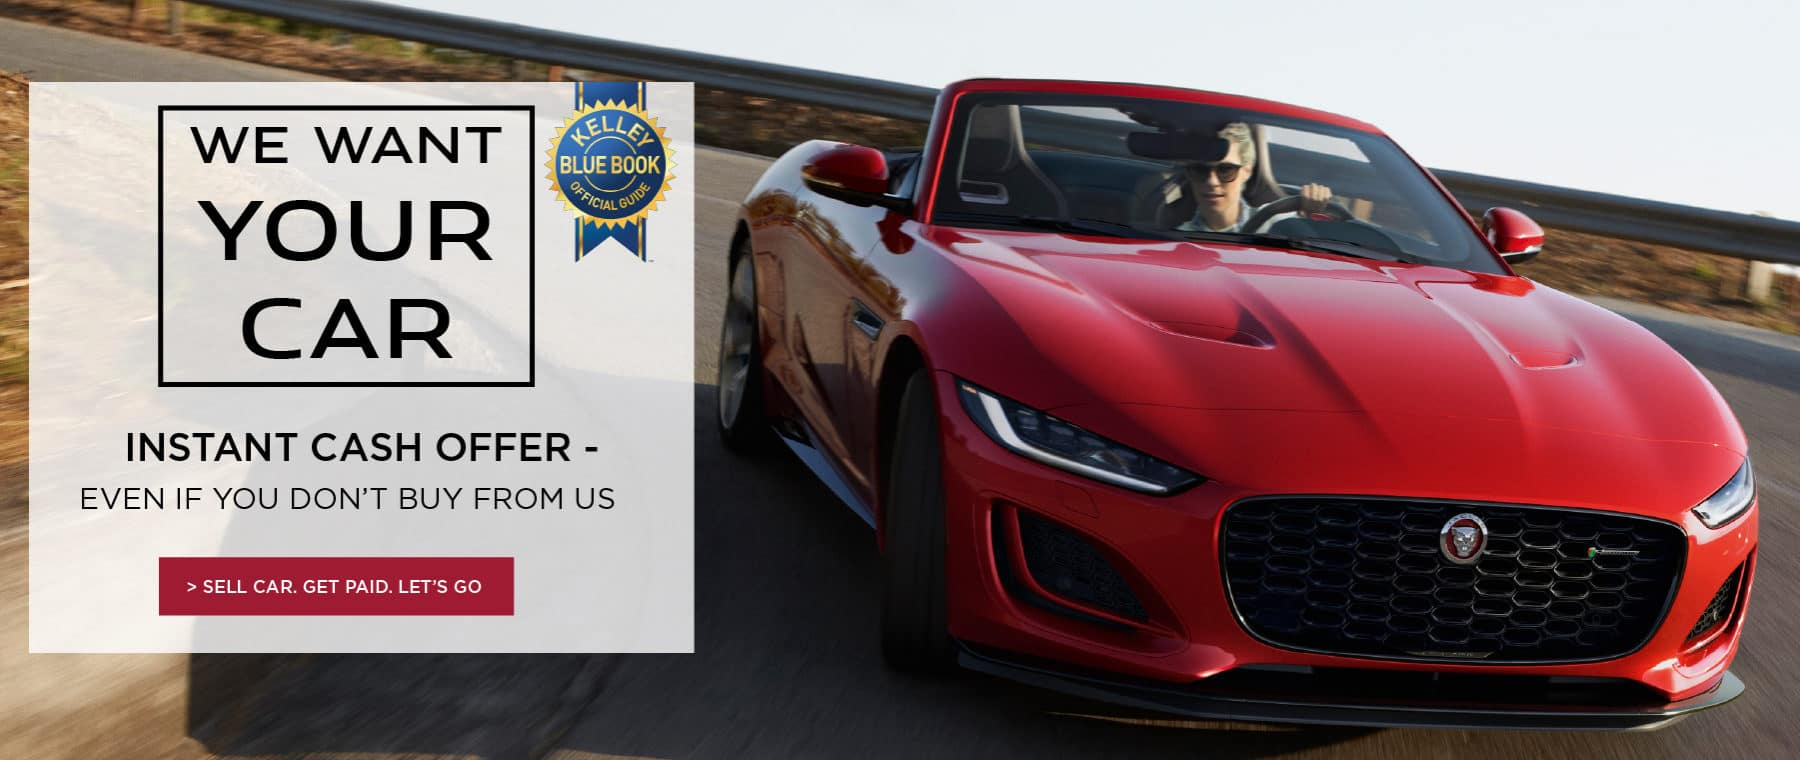 WE WANT YOUR CAR. INSTANT CASH OFFER. EVEN IF YOU DONT BUY FROM US. SELL CAR. GET PAID. LETS GO. RED 2021 JAGUAR F-TYPE CONVERTIBLE DRIVING DOWN ROAD IN DESERT,